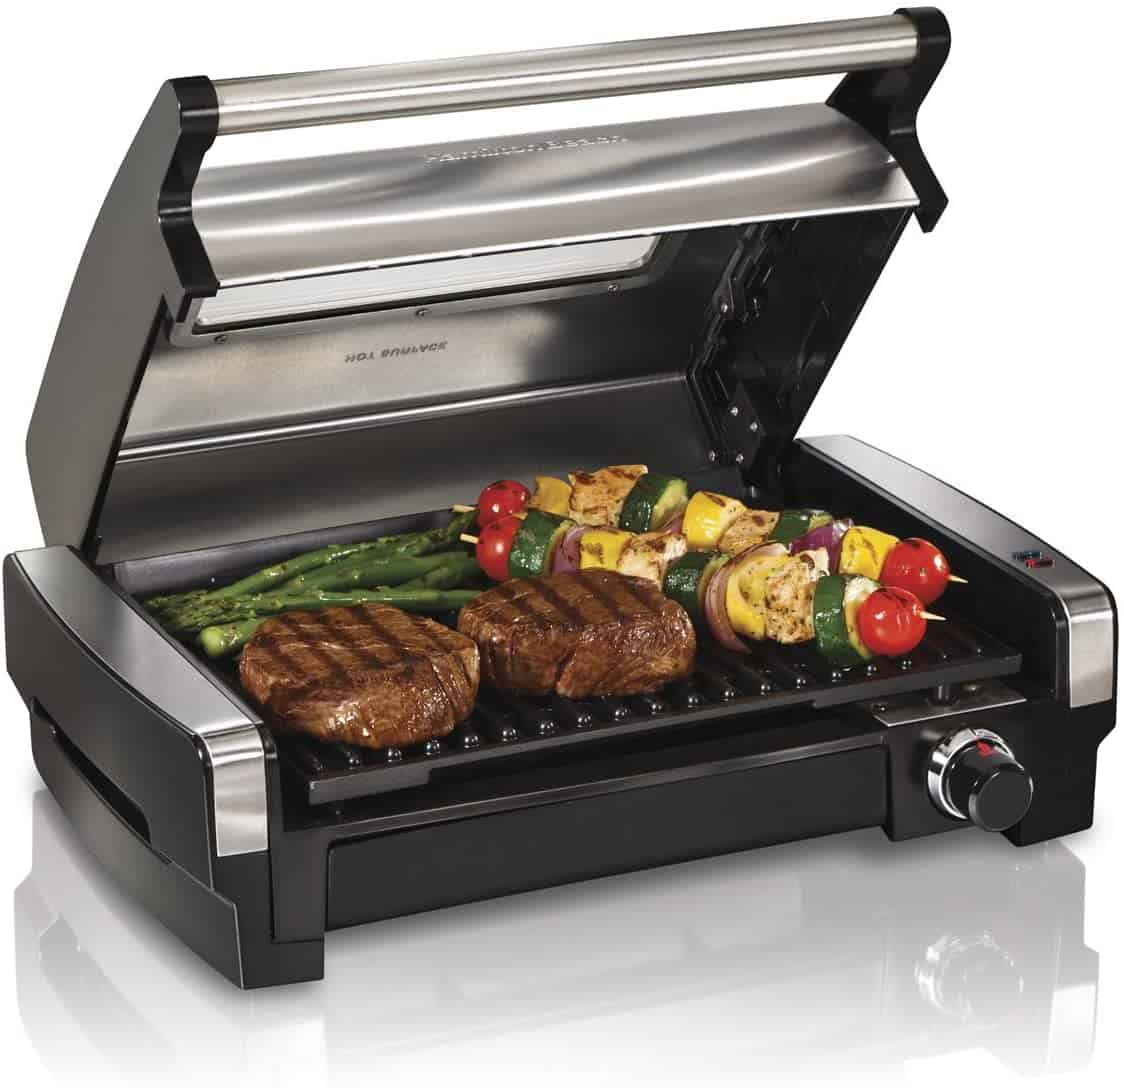 Best indoor grill overall- Hamilton Beach 3-in-1 Indoor Grill and Electric Griddle Combo